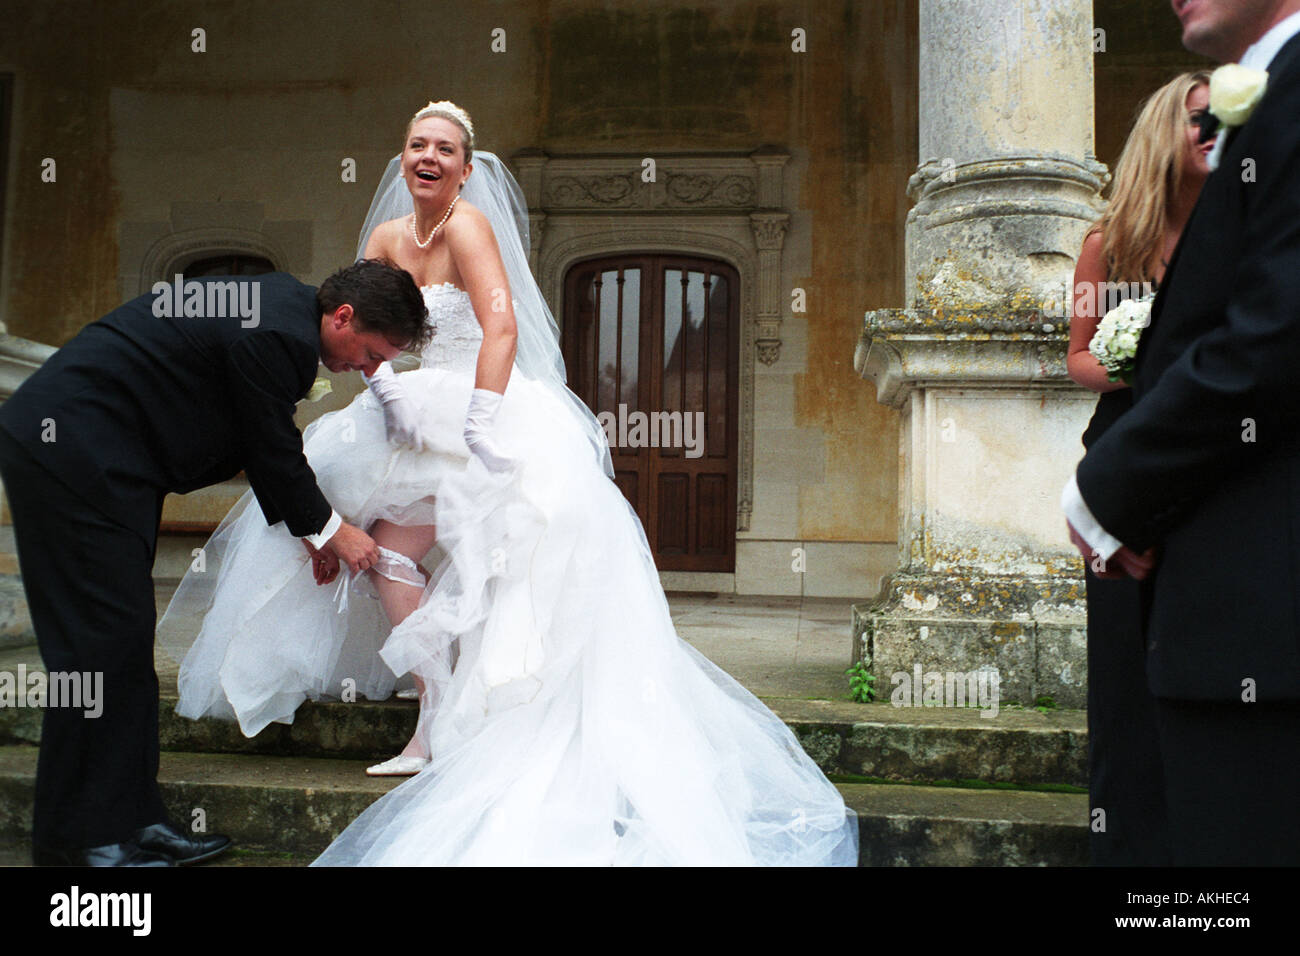 Groom Removing Smiling Bride S Garter Belt Watched By The